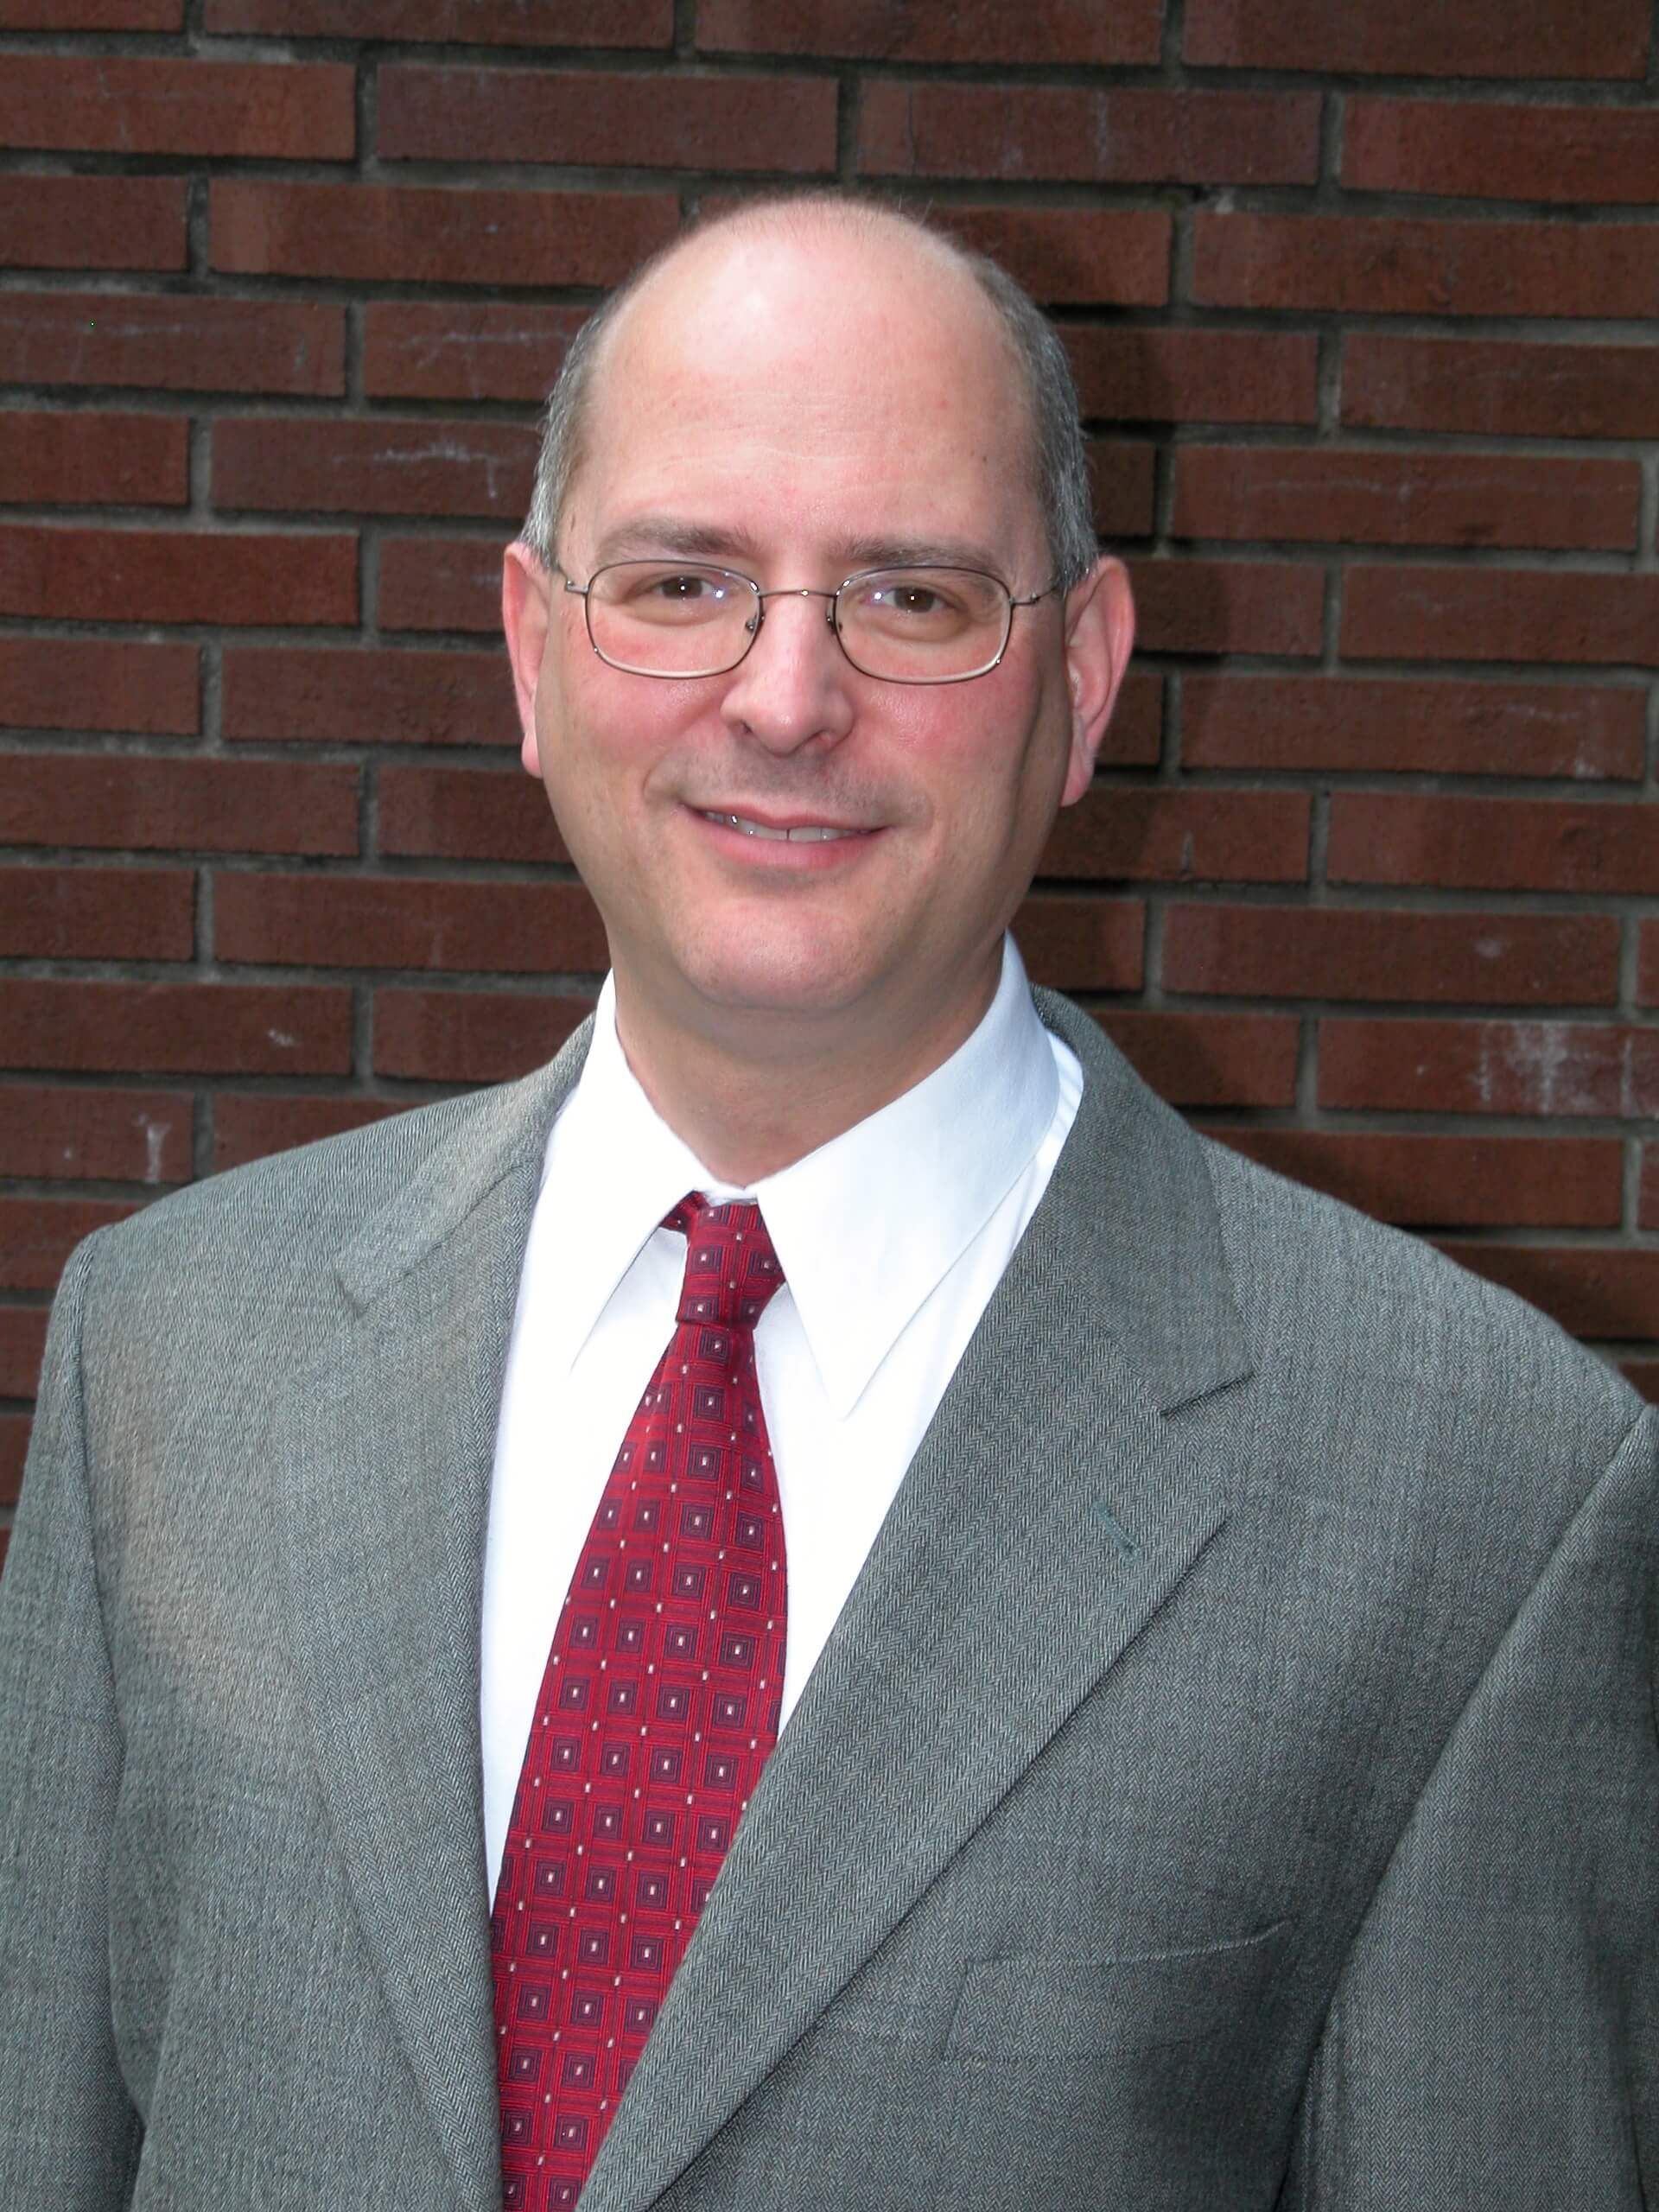 JEFFREY PALMER NAMED NEW CHAIR OF PHYSICAL MEDICINE AND